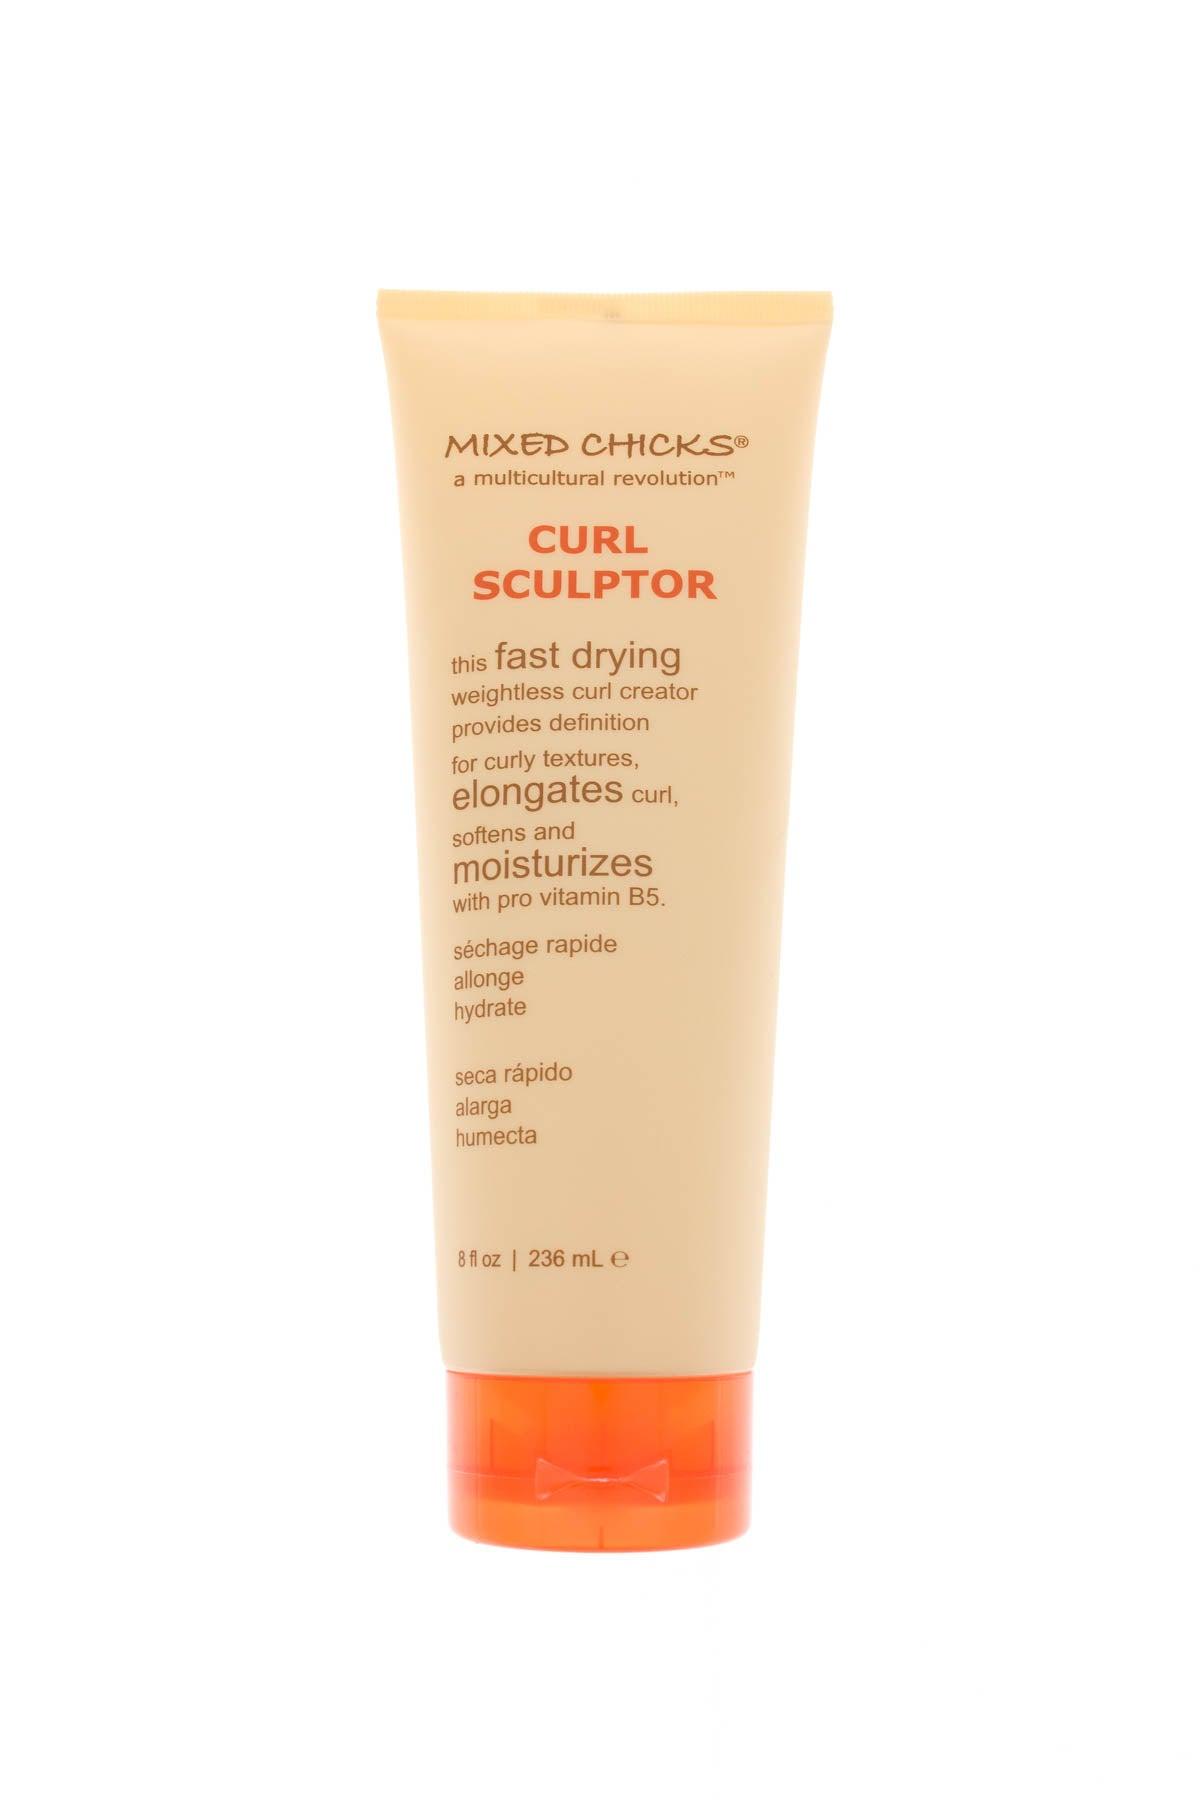 Creme durch Kreide - Mixed Chicks Curl Sculptor